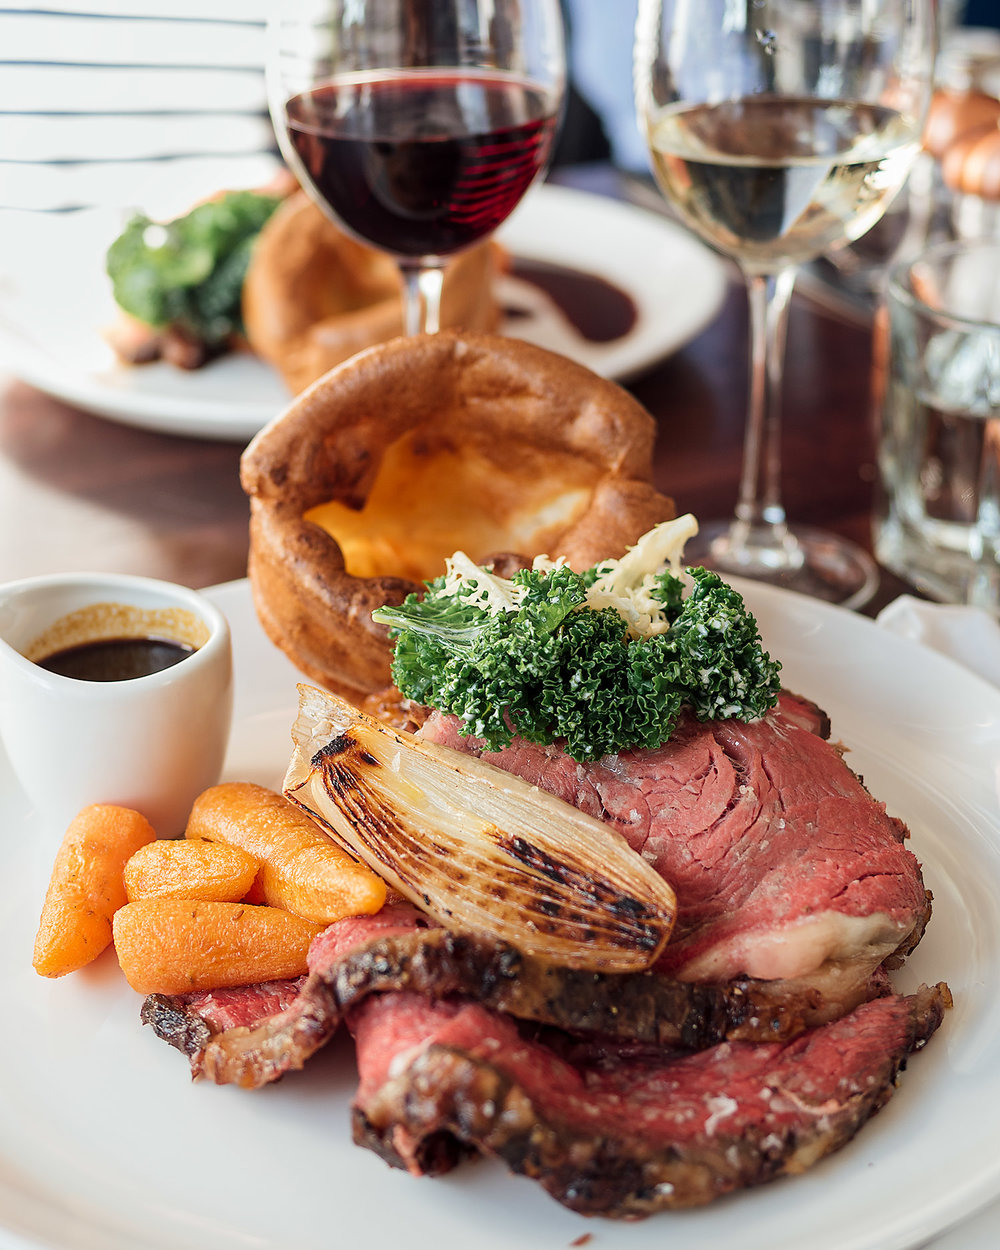 The main event, Sunday roast beef at Orto restaurant, Edinburgh